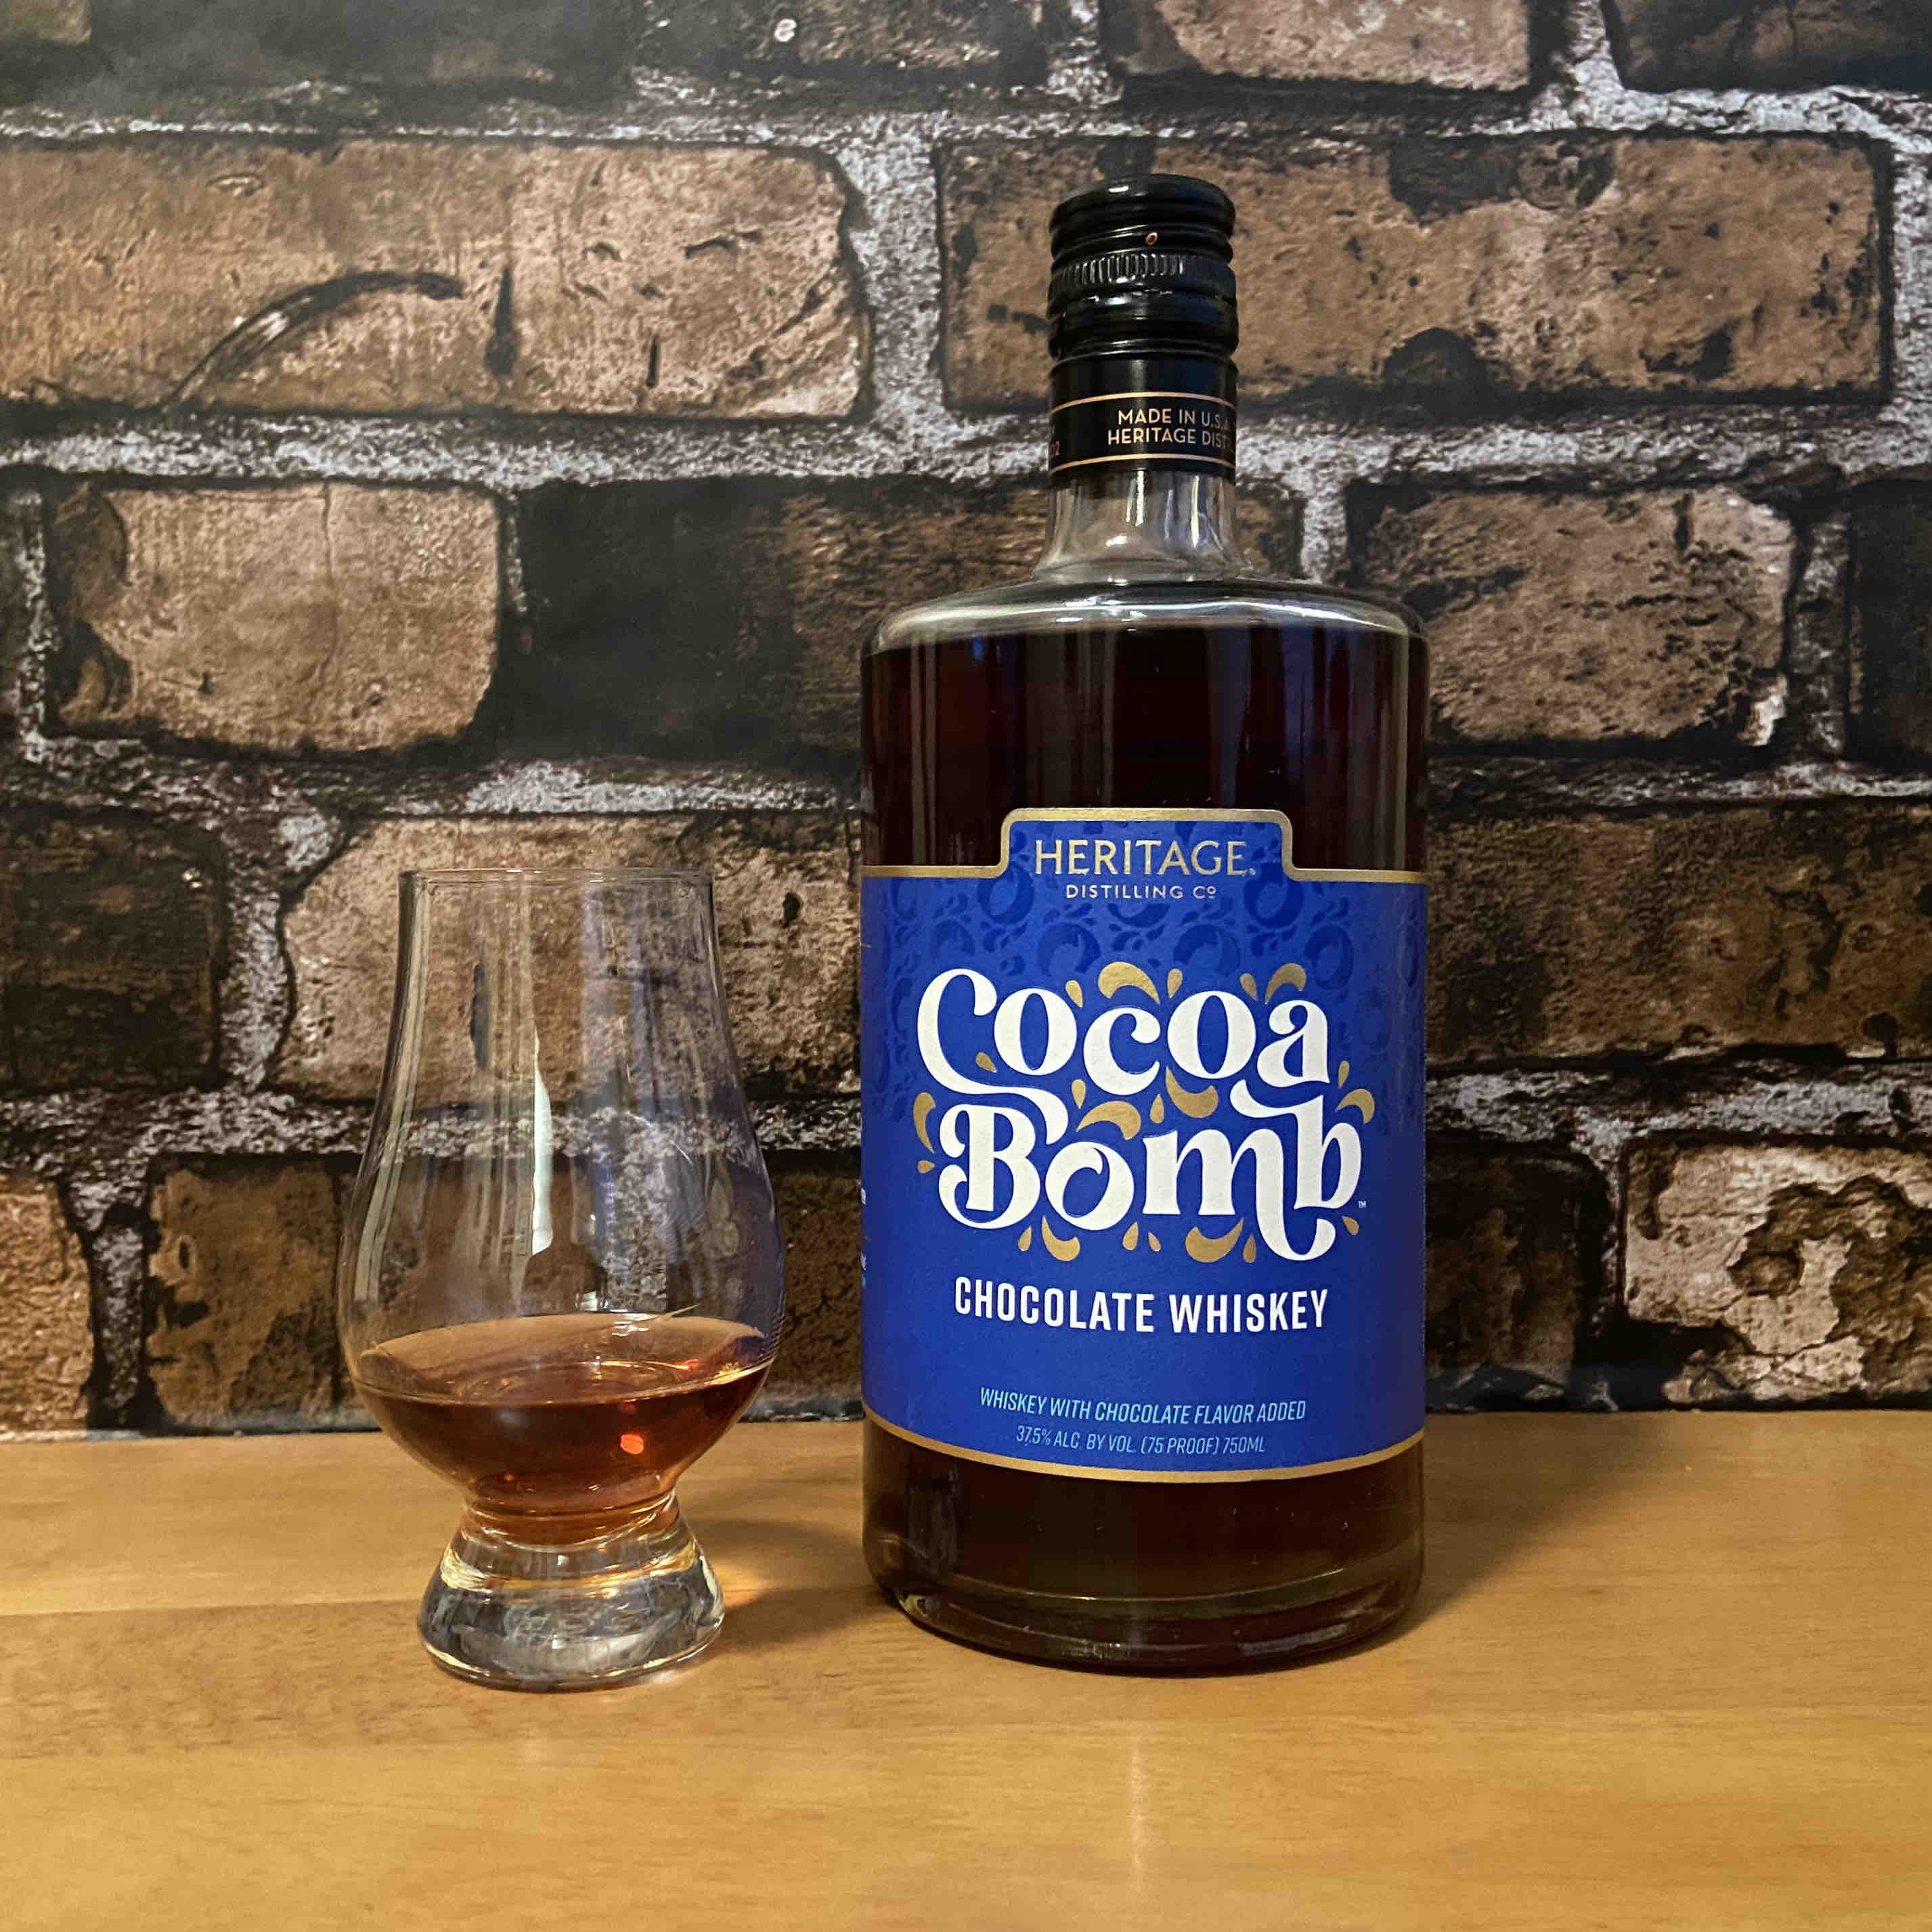 Whiskey Wednesday with Cocoa Bomb from Heritage Distilling Co.